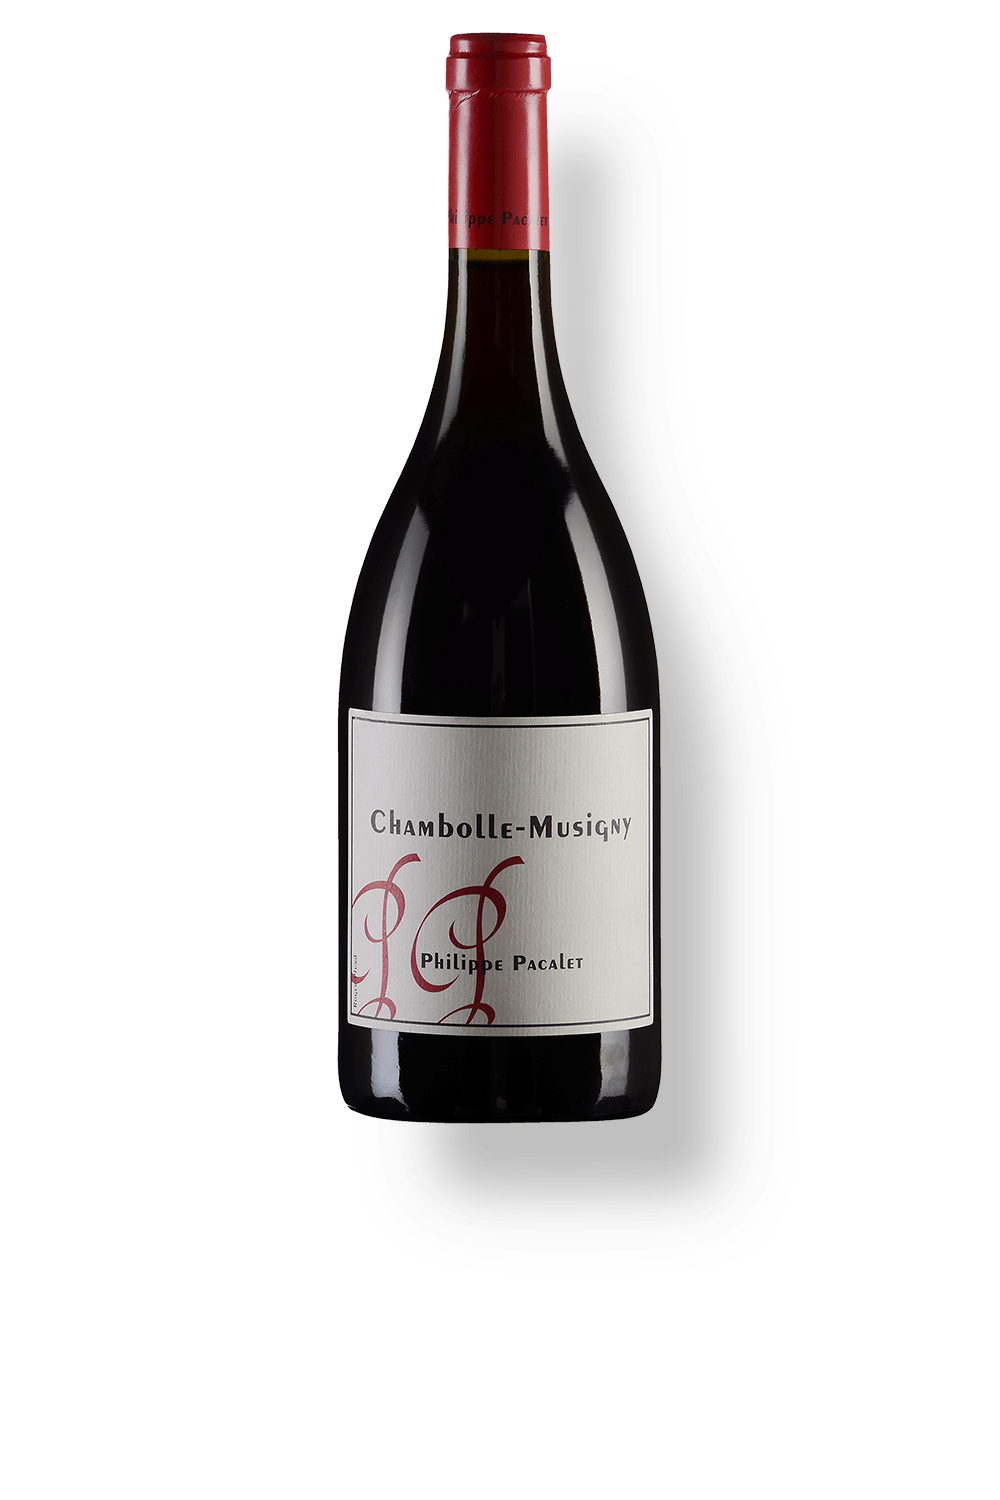 Vinho_Tinto_Chambolle-Musigny_2014_Philippe_Pacalet_Bourgogne_Pinot_Noir_Franca